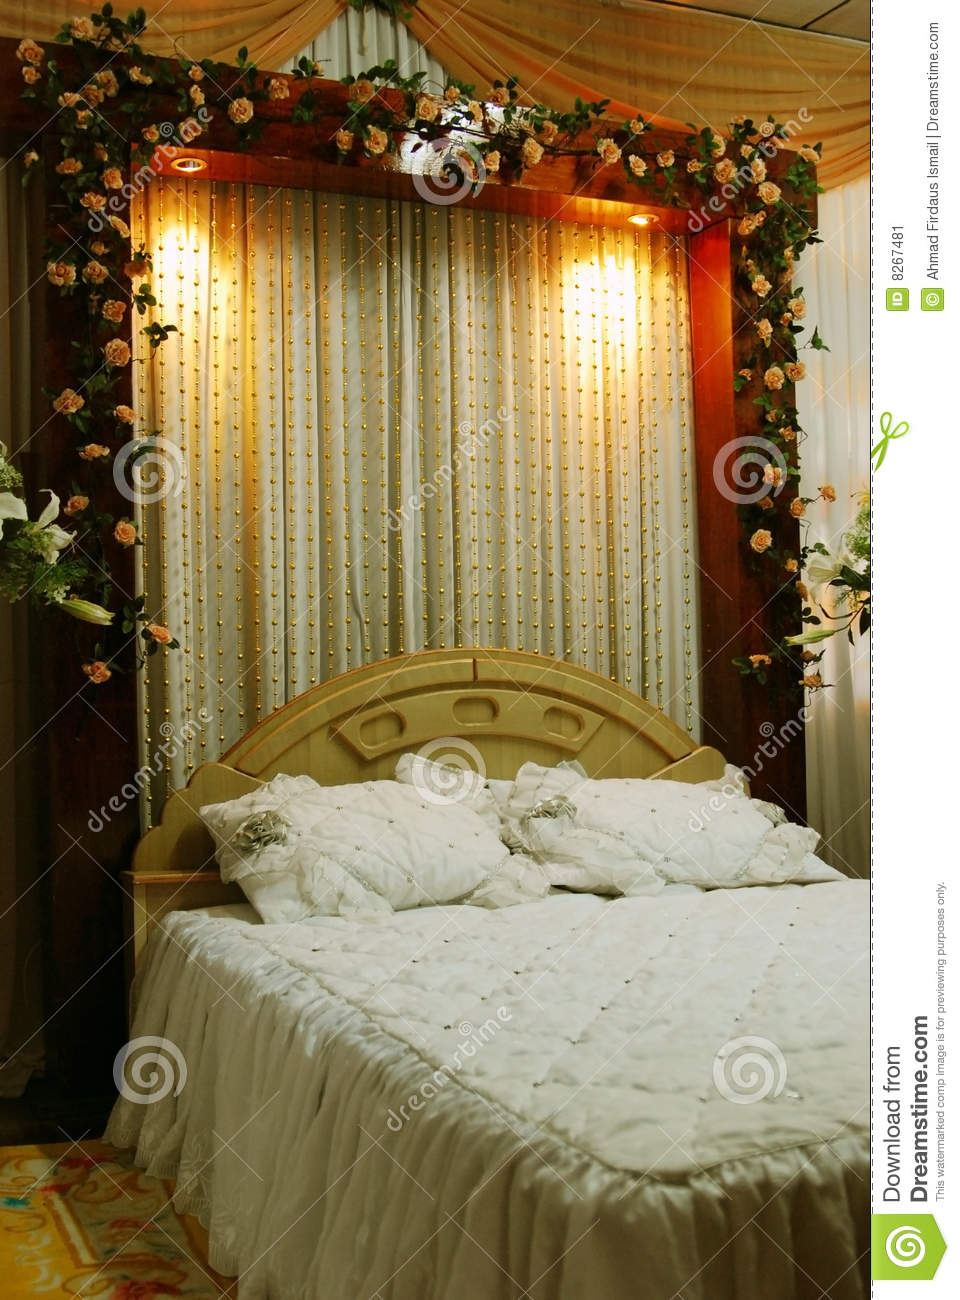 Wedding Bed Decoration Stock Image Image 8267481